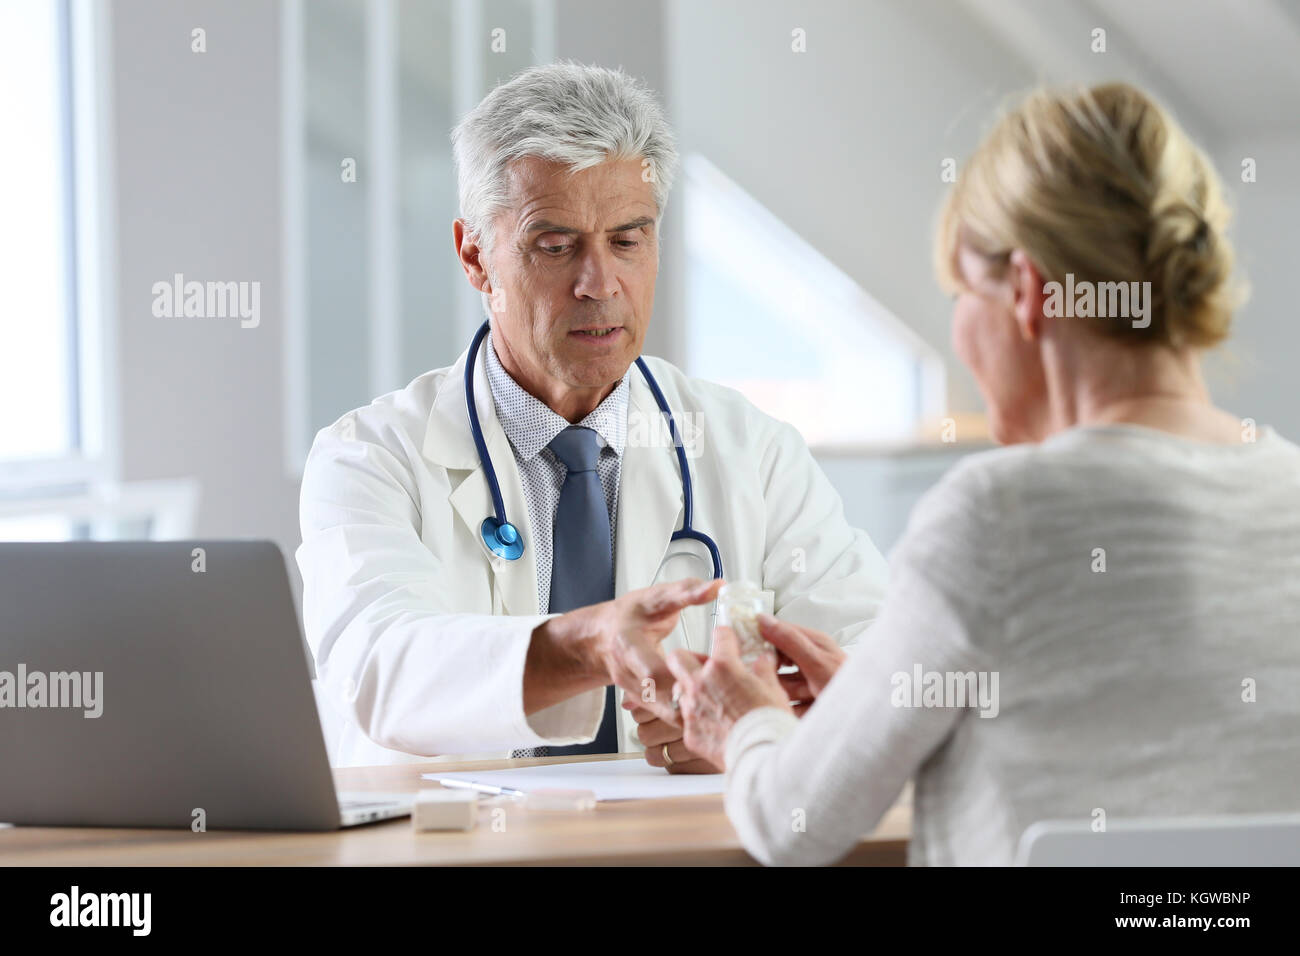 Doctor having consultation with patient in office - Stock Image